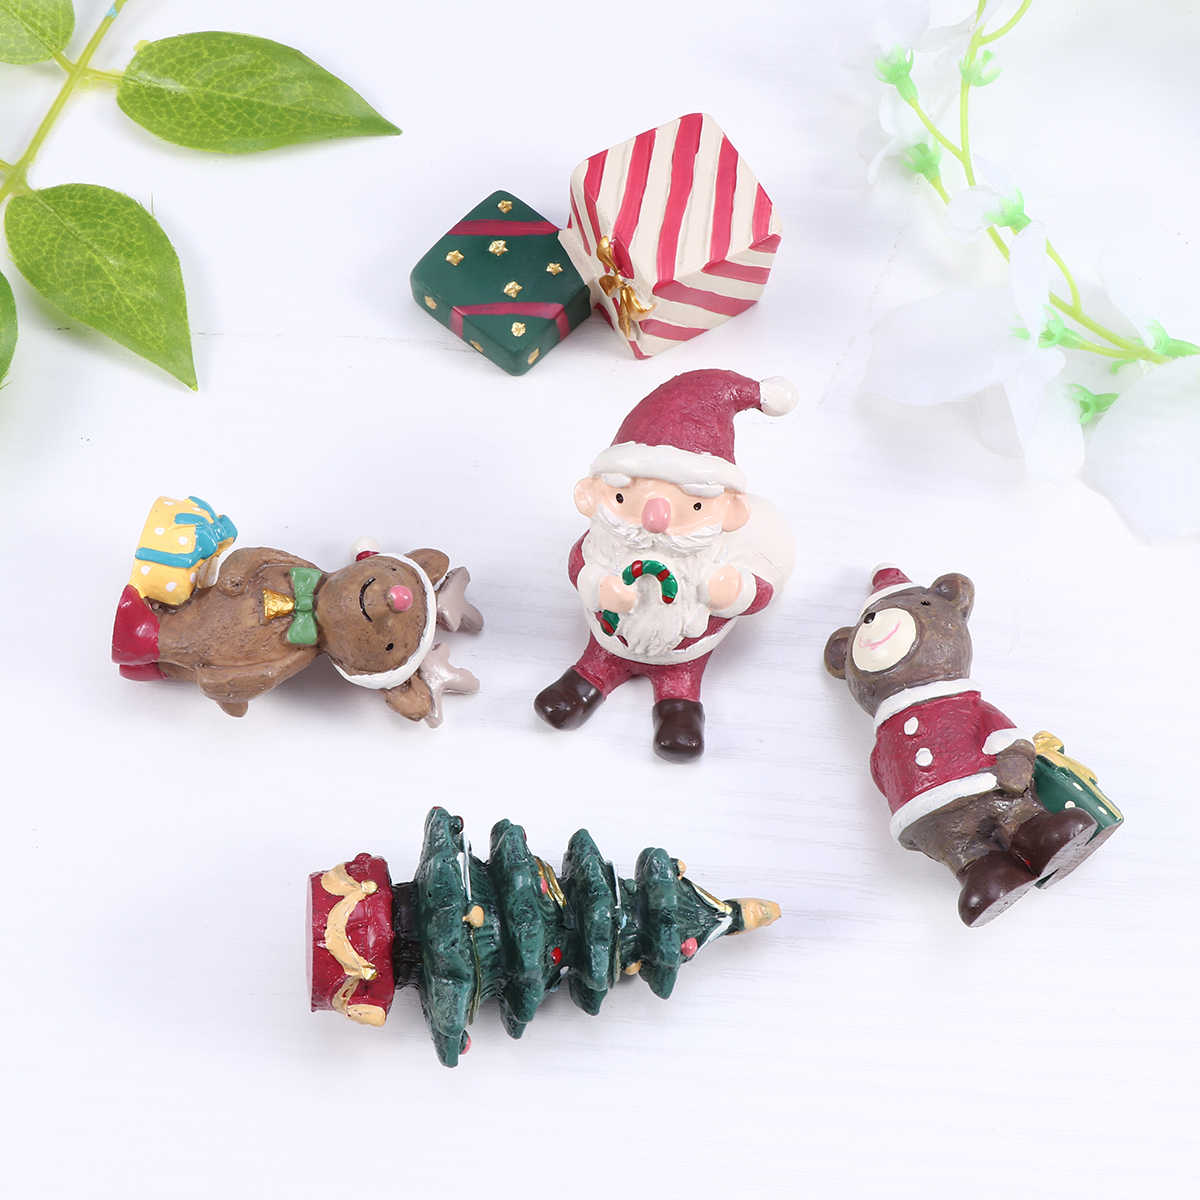 3pcs Christmas Figurine Mini Micro Landscape Tabletop Christmas Accessories Ornaments Decoration for Office Home Car